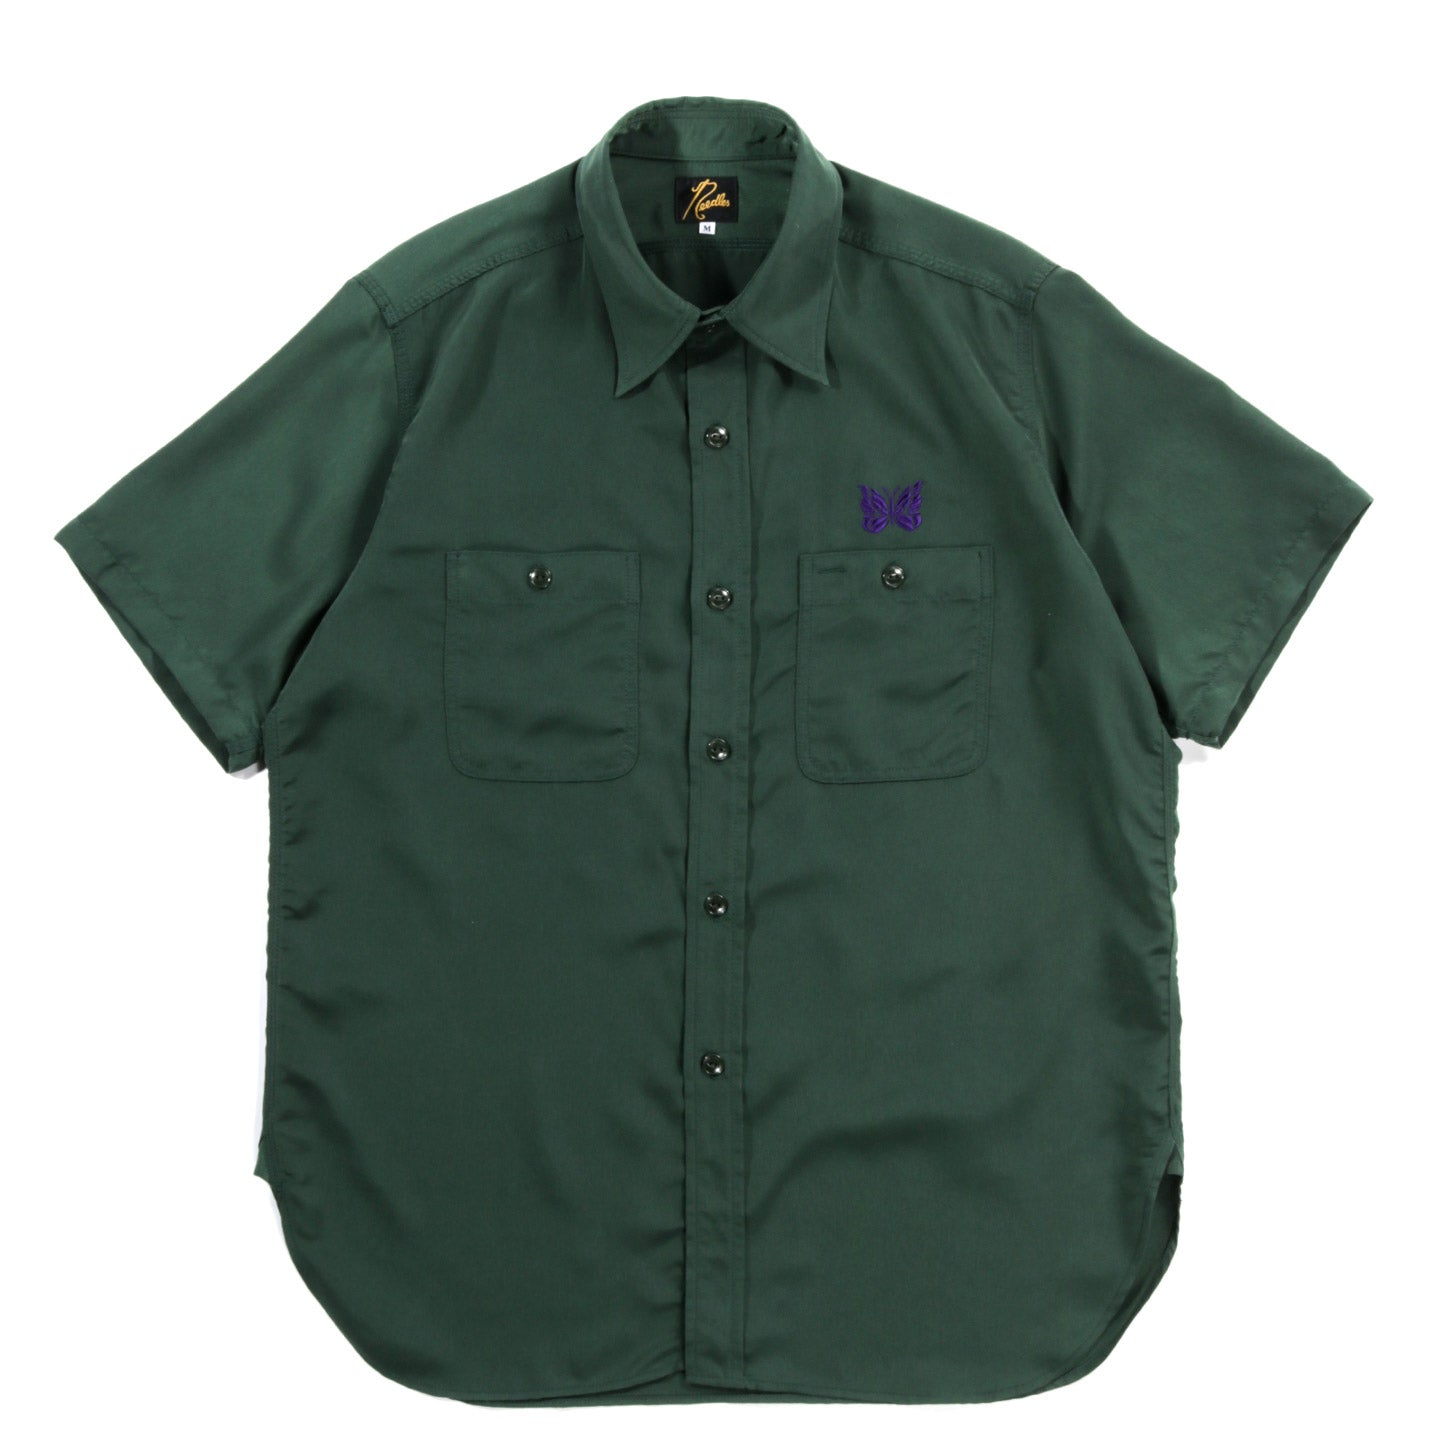 NEEDLES S/S WORK SHIRT POLY CLOTH GREEN